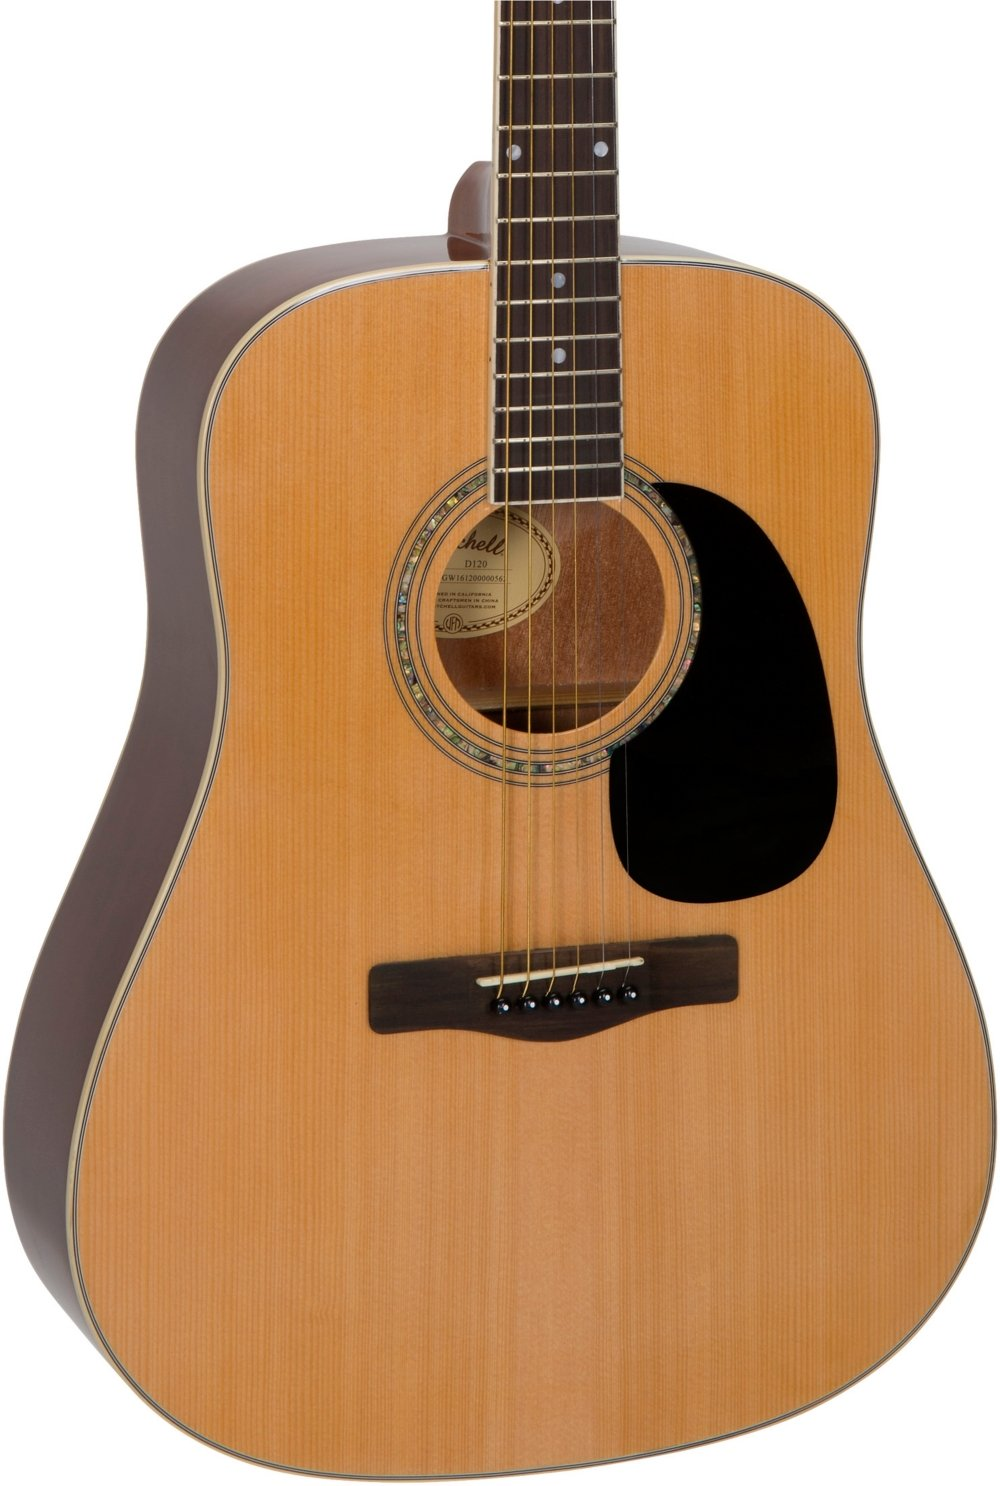 Mitchell D120 Dreadnought Acoustic Guitar Natural by Mitchell